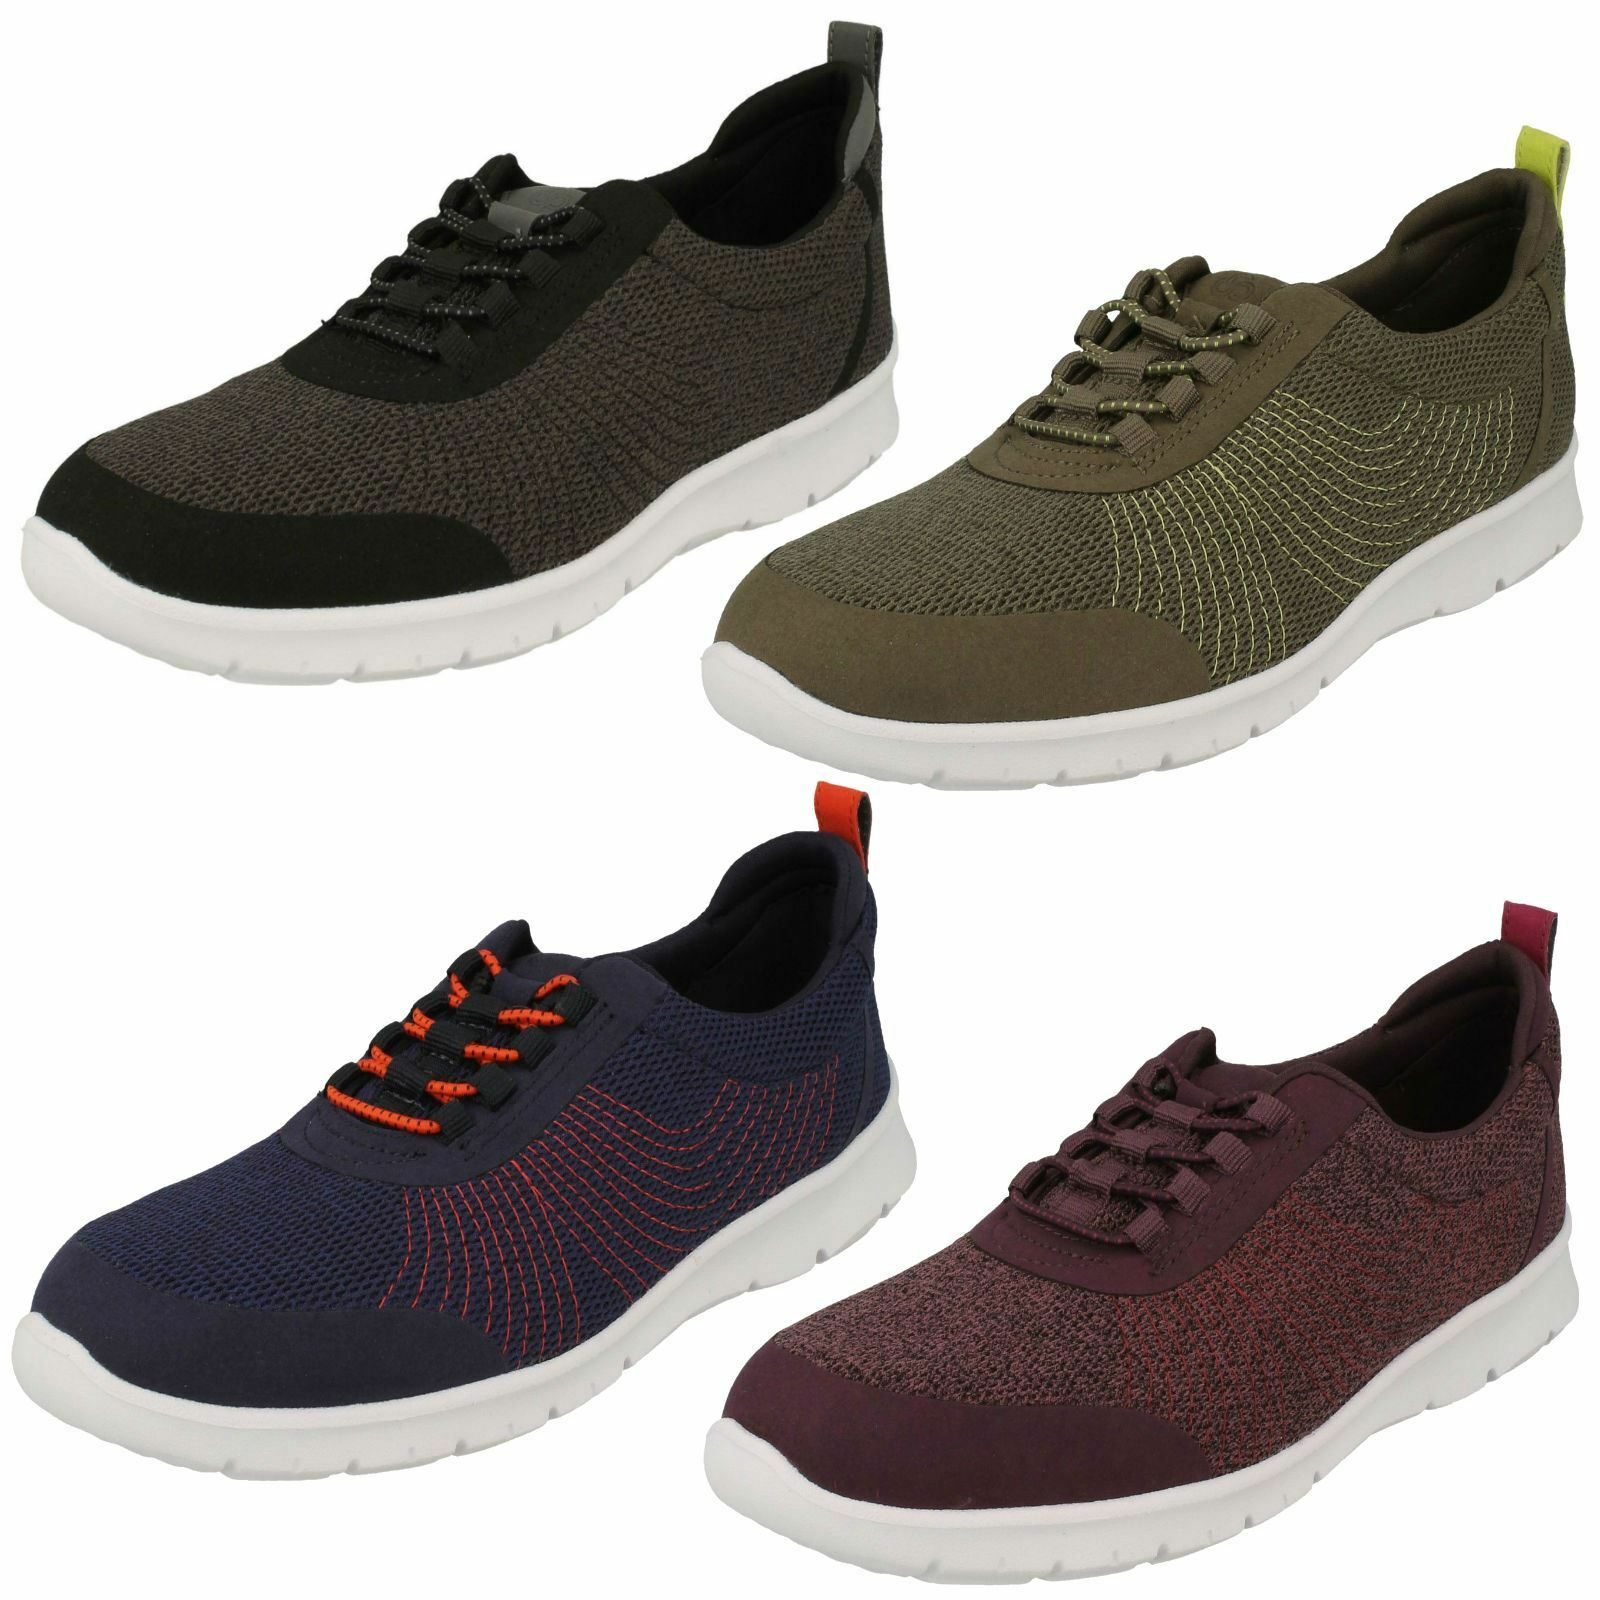 Ladies Clarks Elasticated Fastener Sports Trainers Step Bllena Bay